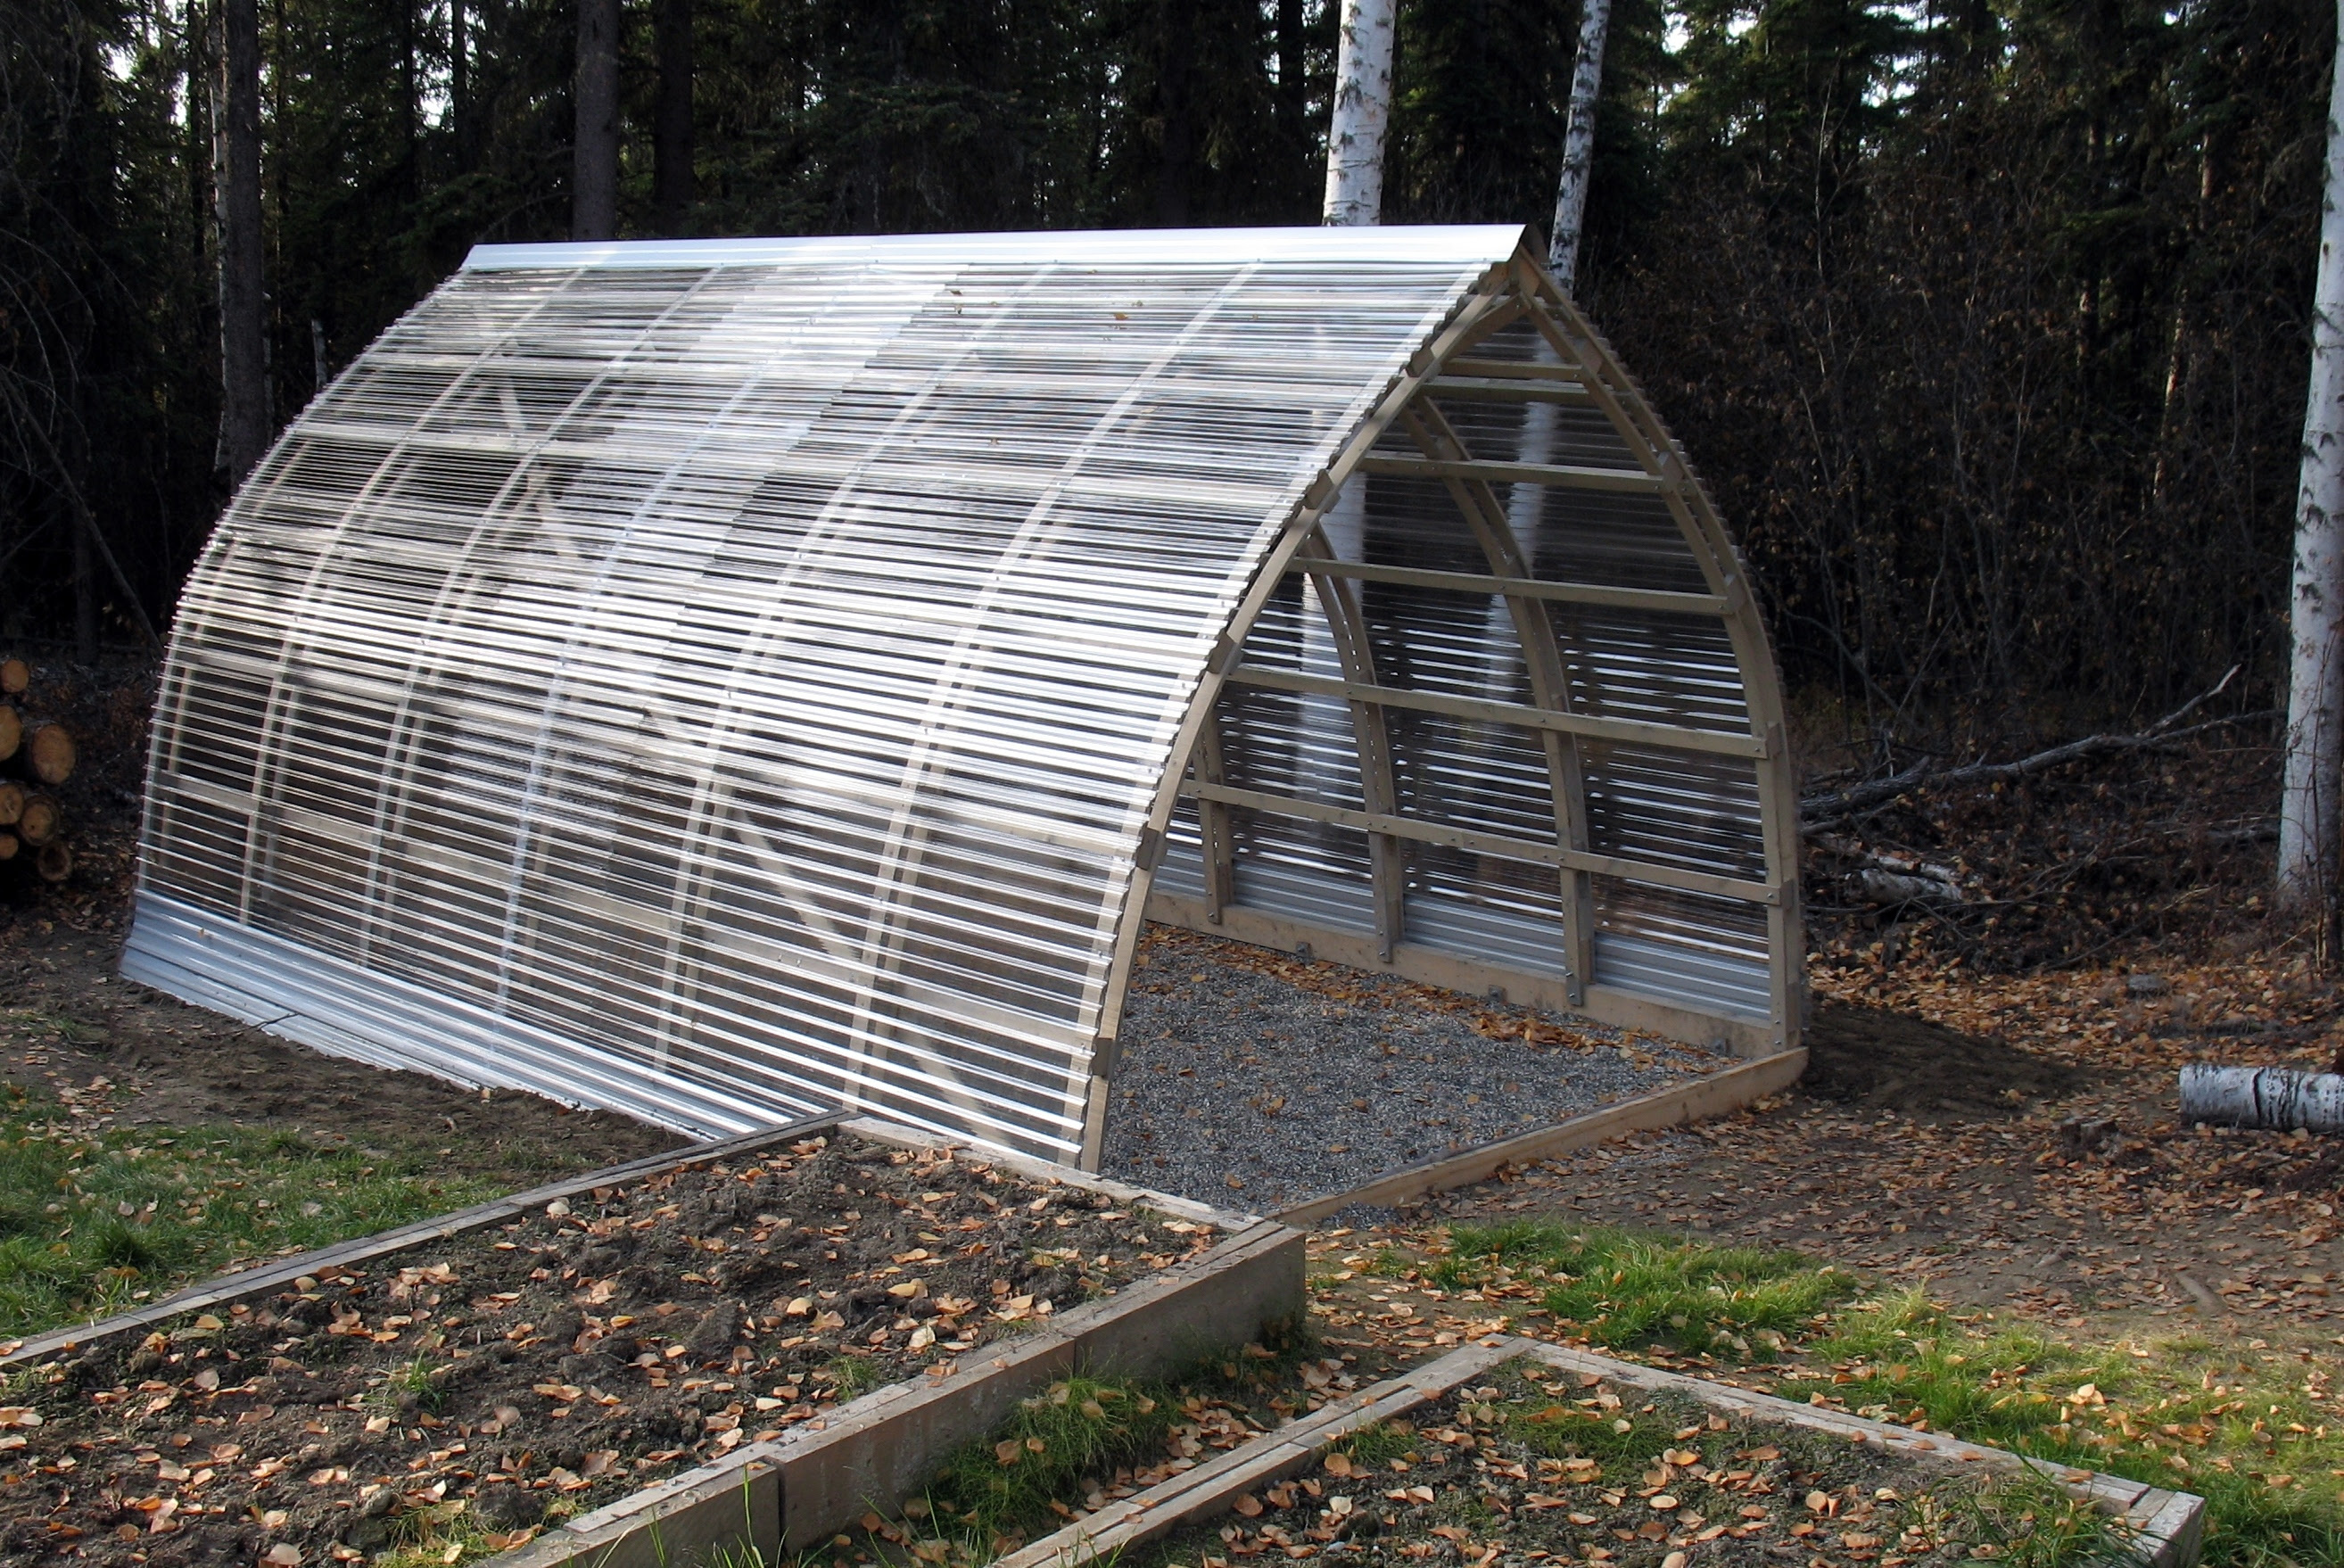 Green House With Polycarbonate Roof Panels